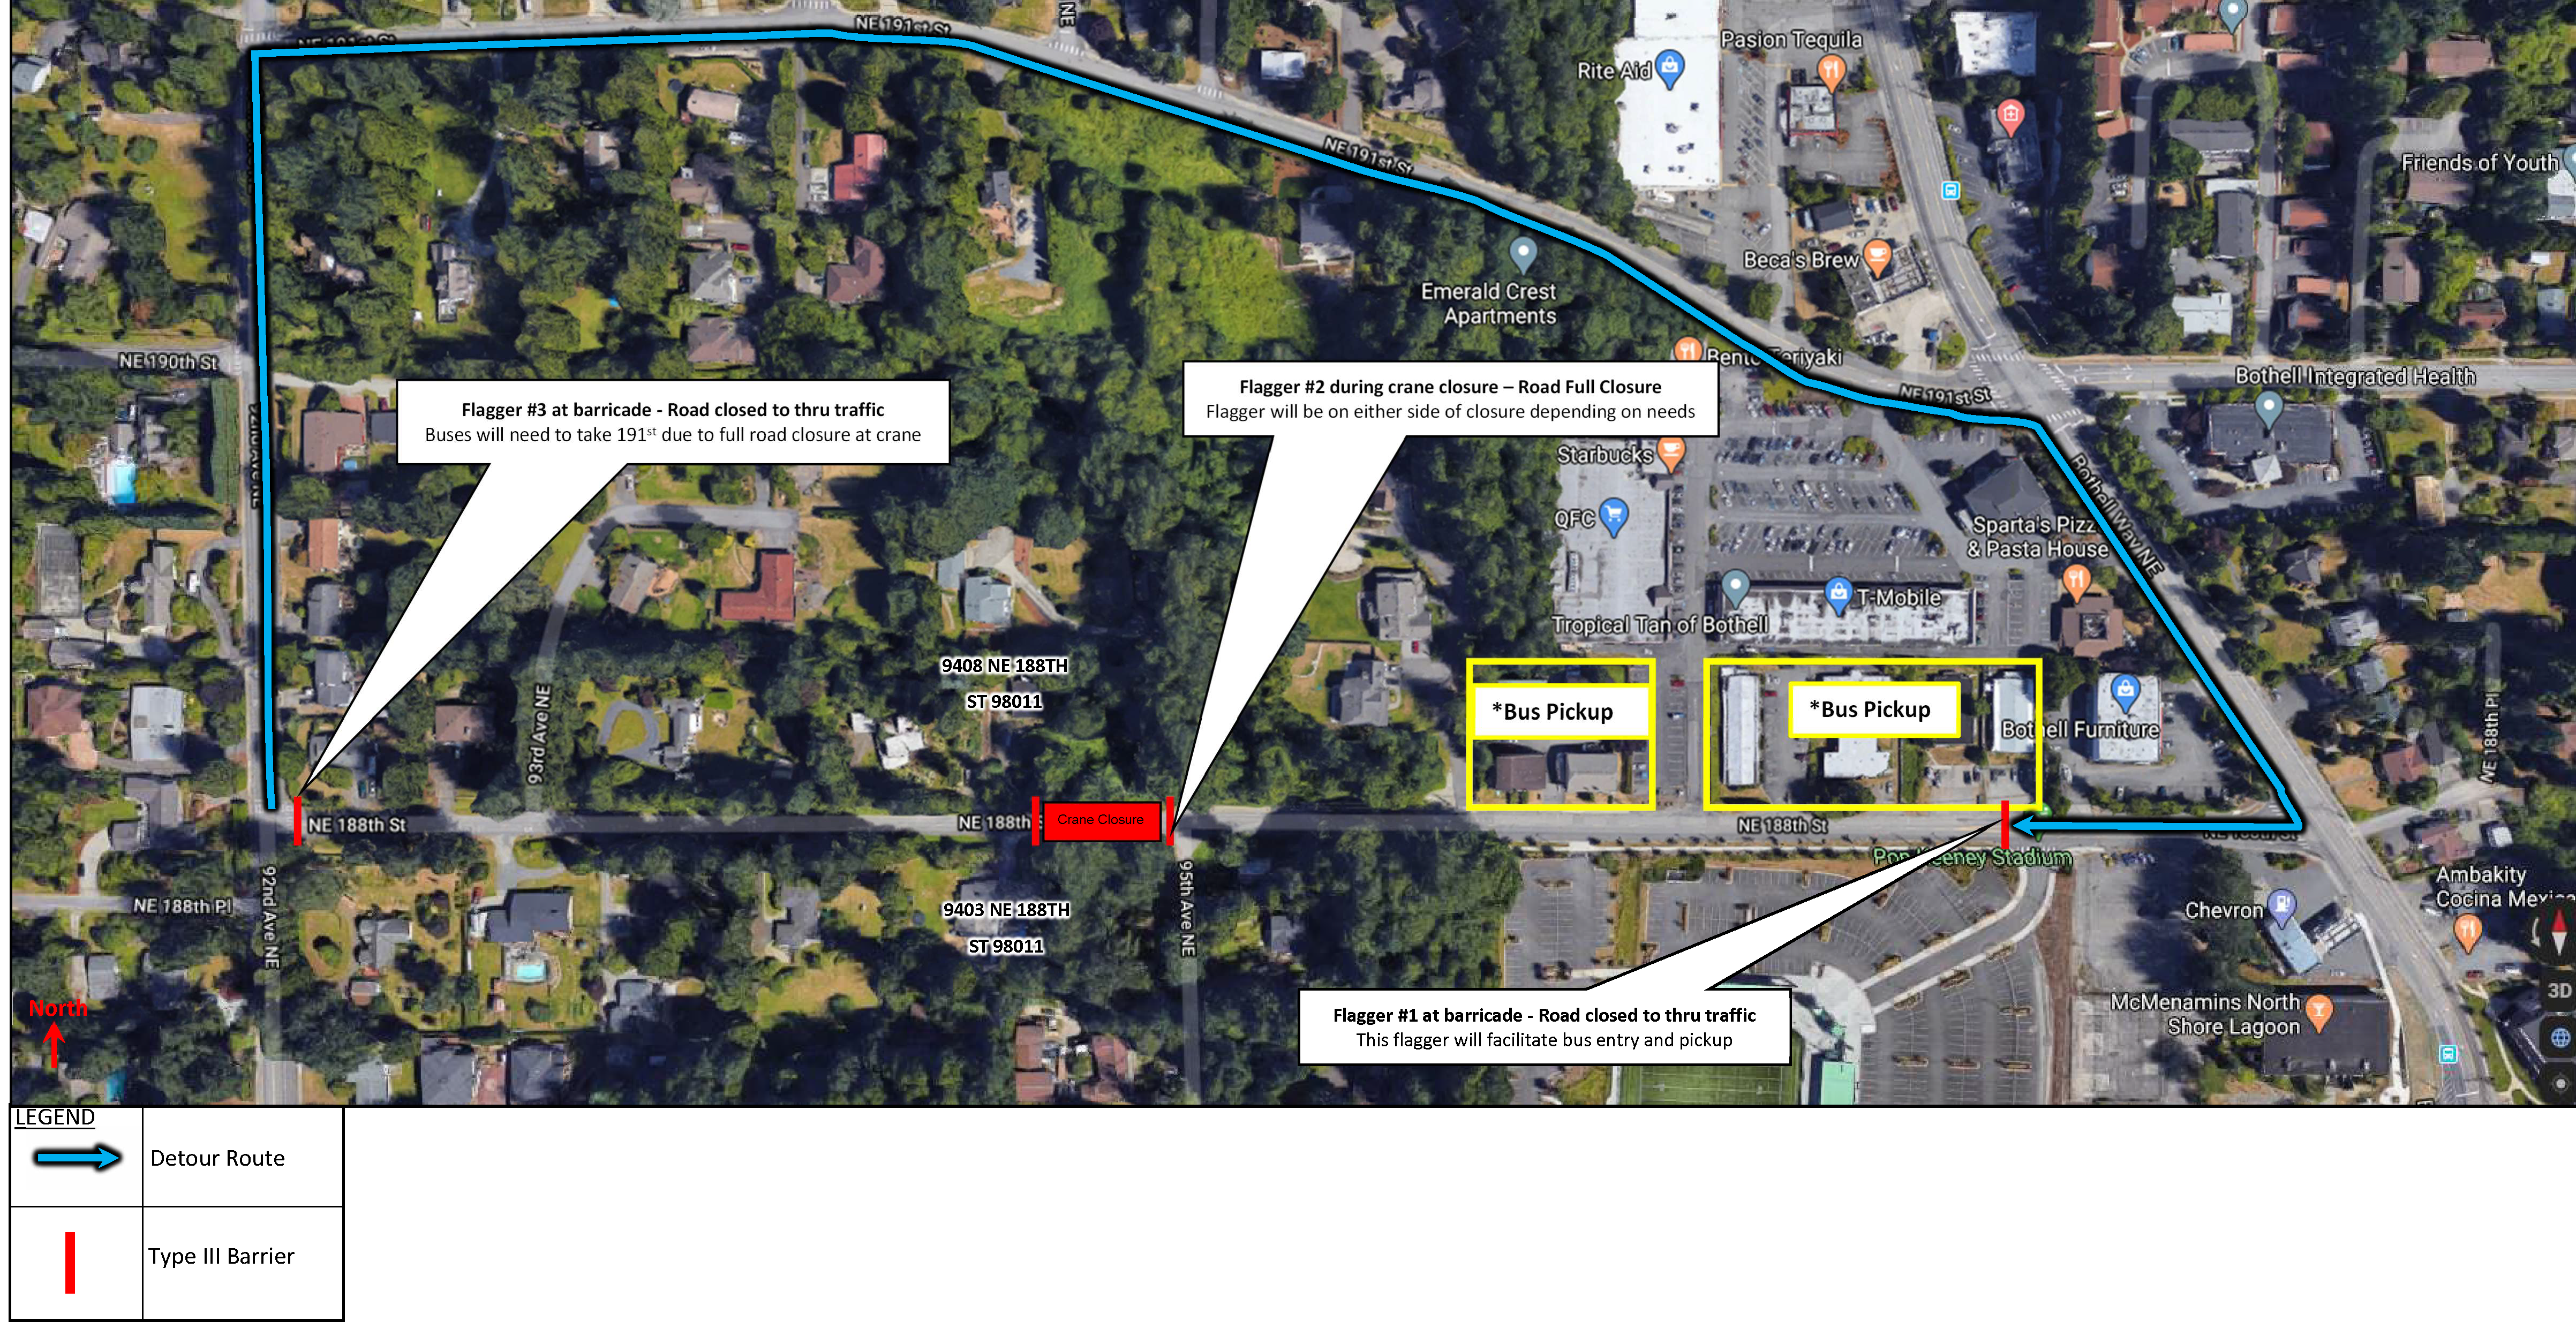 NE 188th St Detour Map